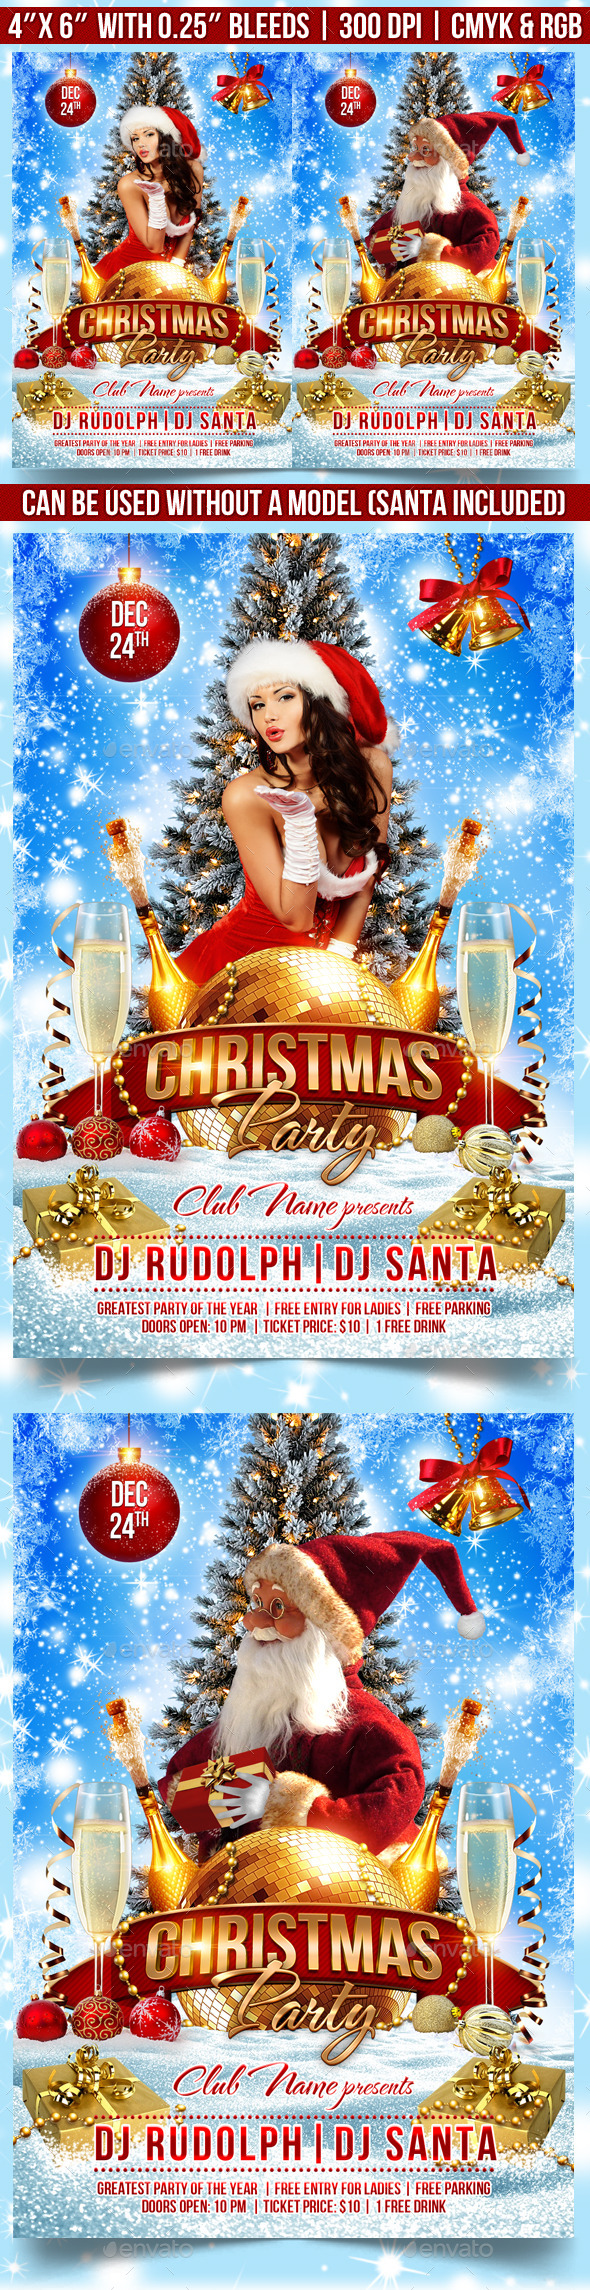 GraphicRiver Christmas Party Flyer Template 9298329